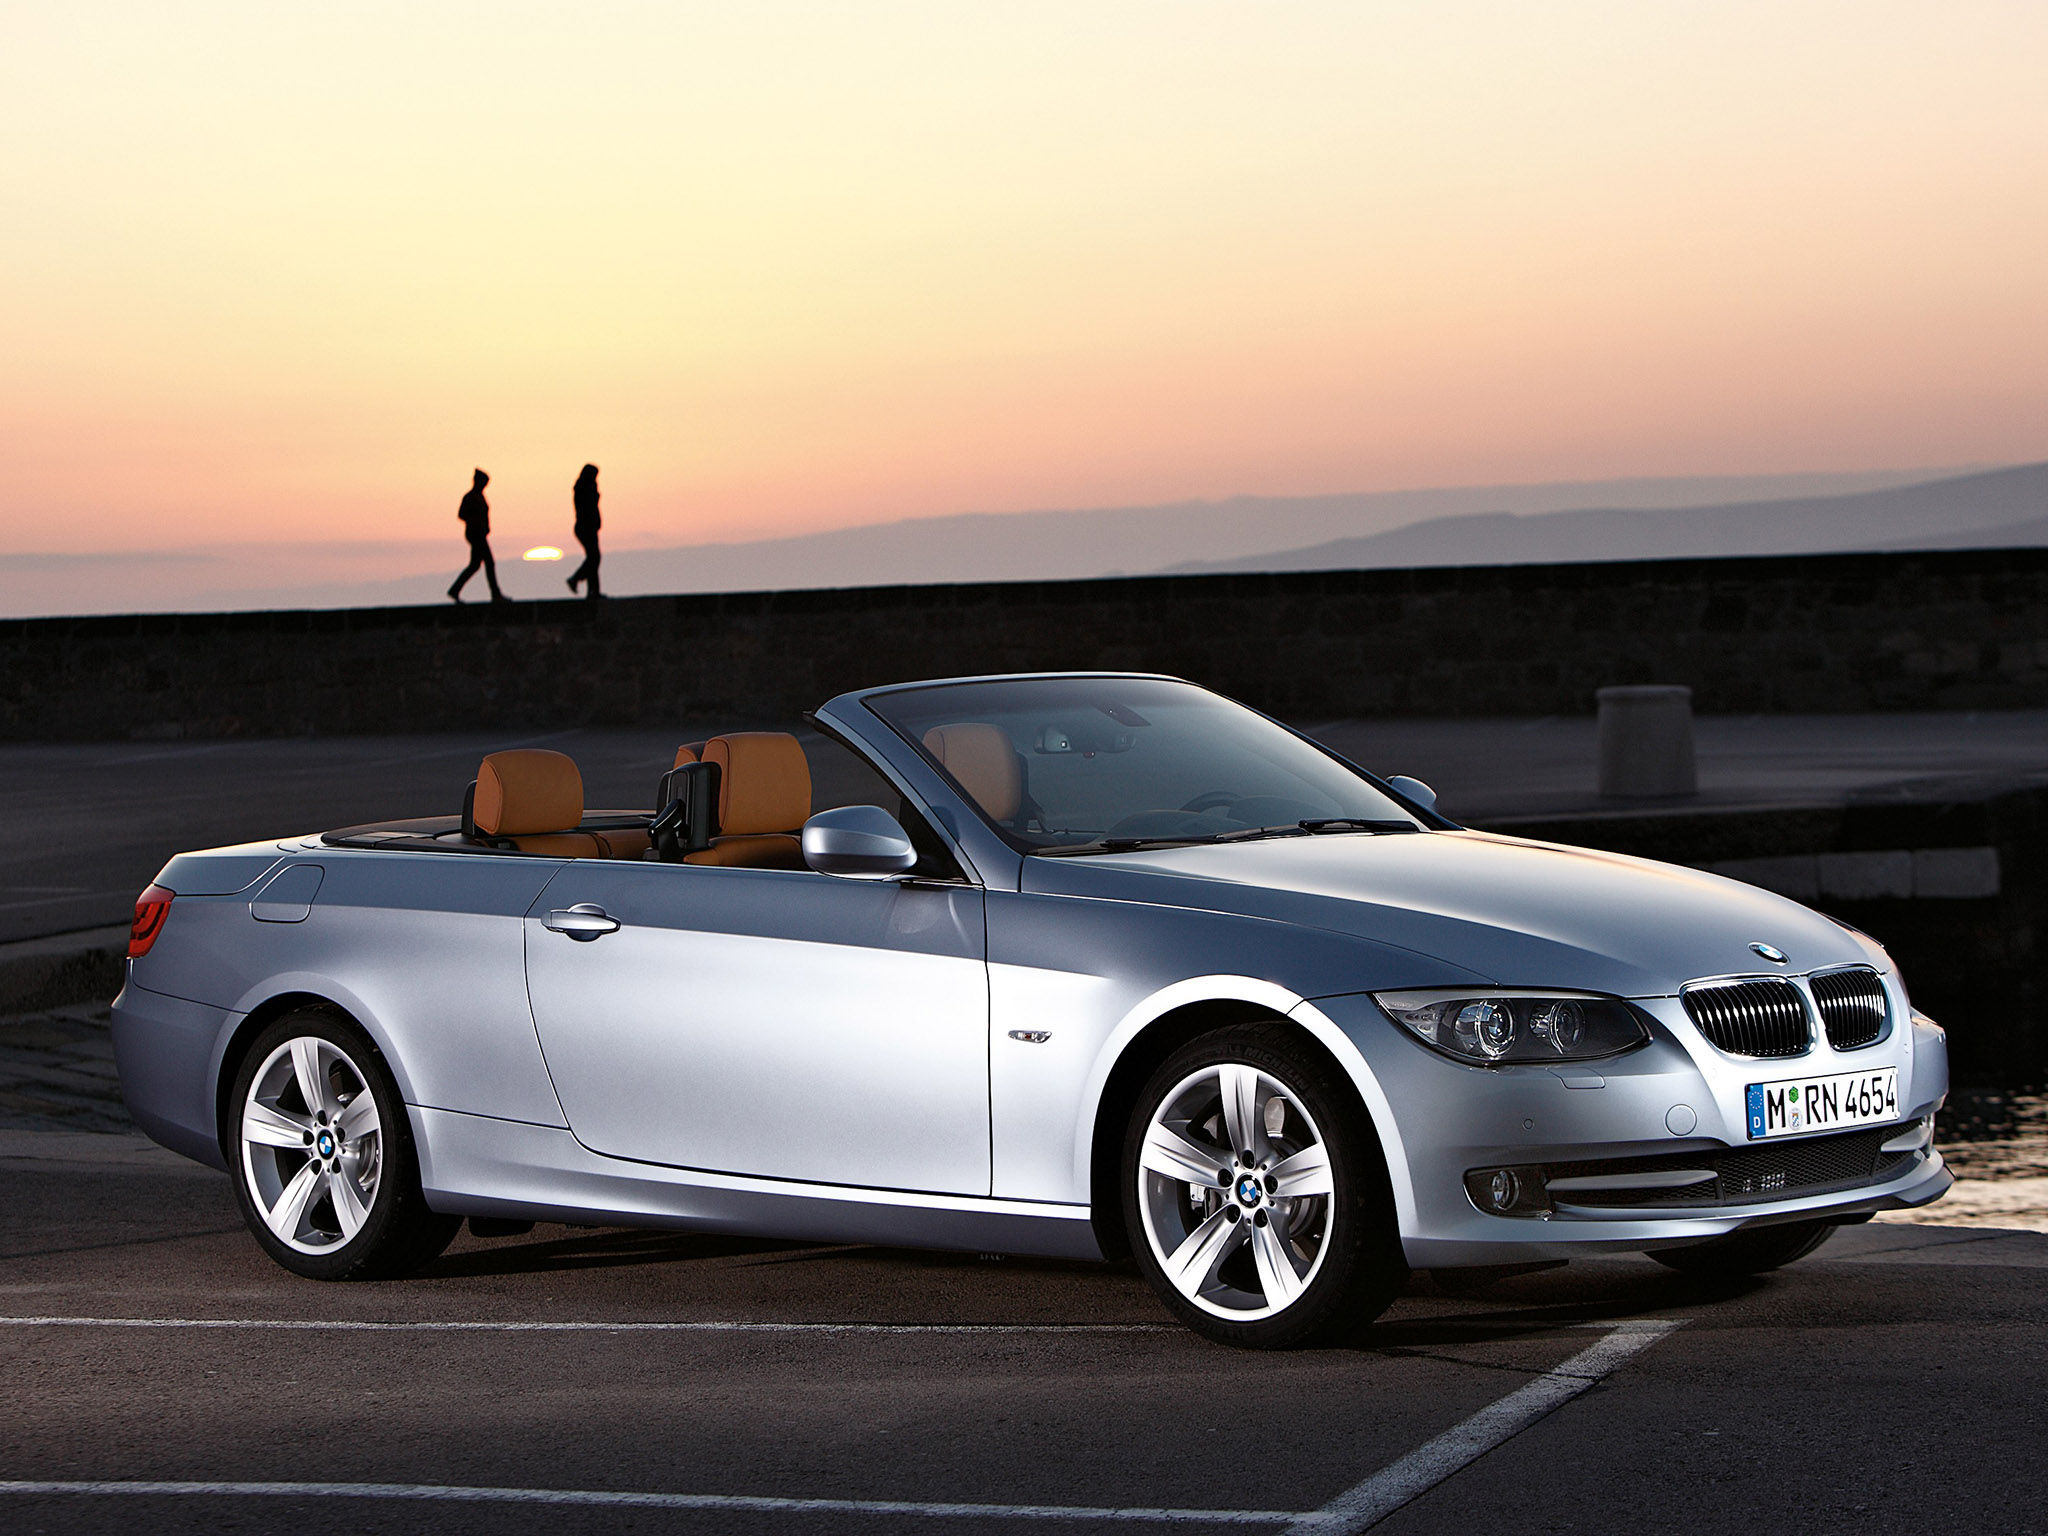 bmw 3 series cabrio (e93) 2008 models